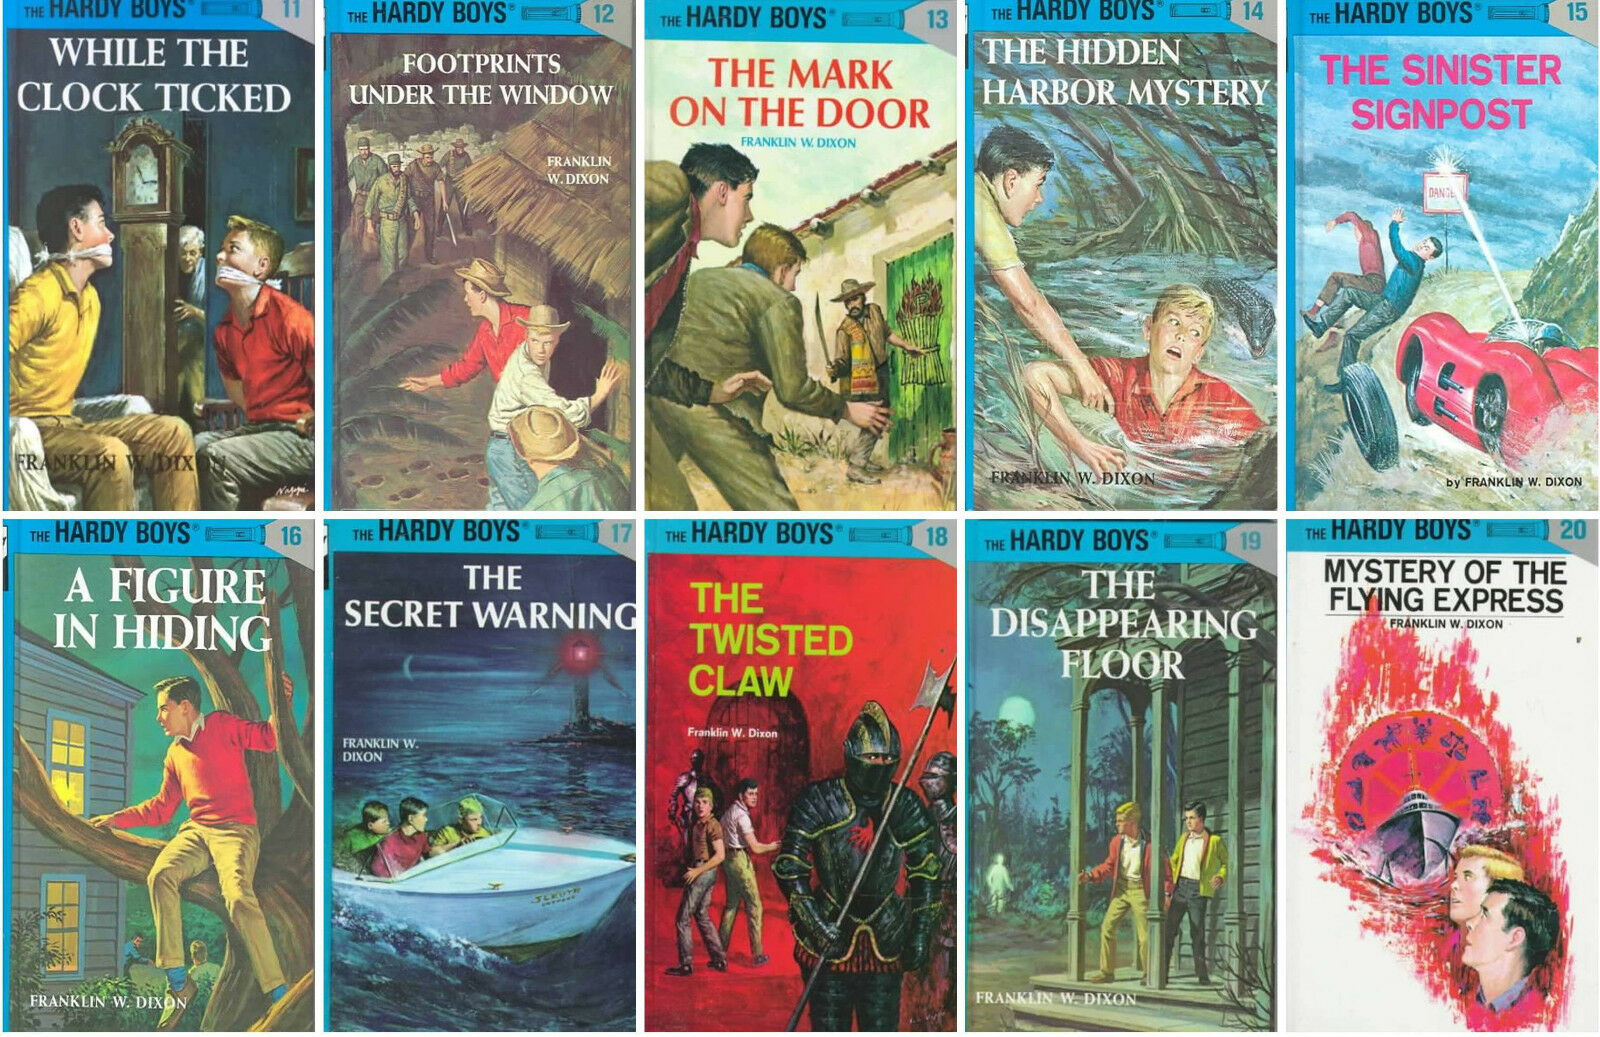 HARDY BOYS Collection Set 11-20 Coby Franklin W. Dixon MATCHING HARDCOVER  BOOKS! 1 of 1Only 0 available ...